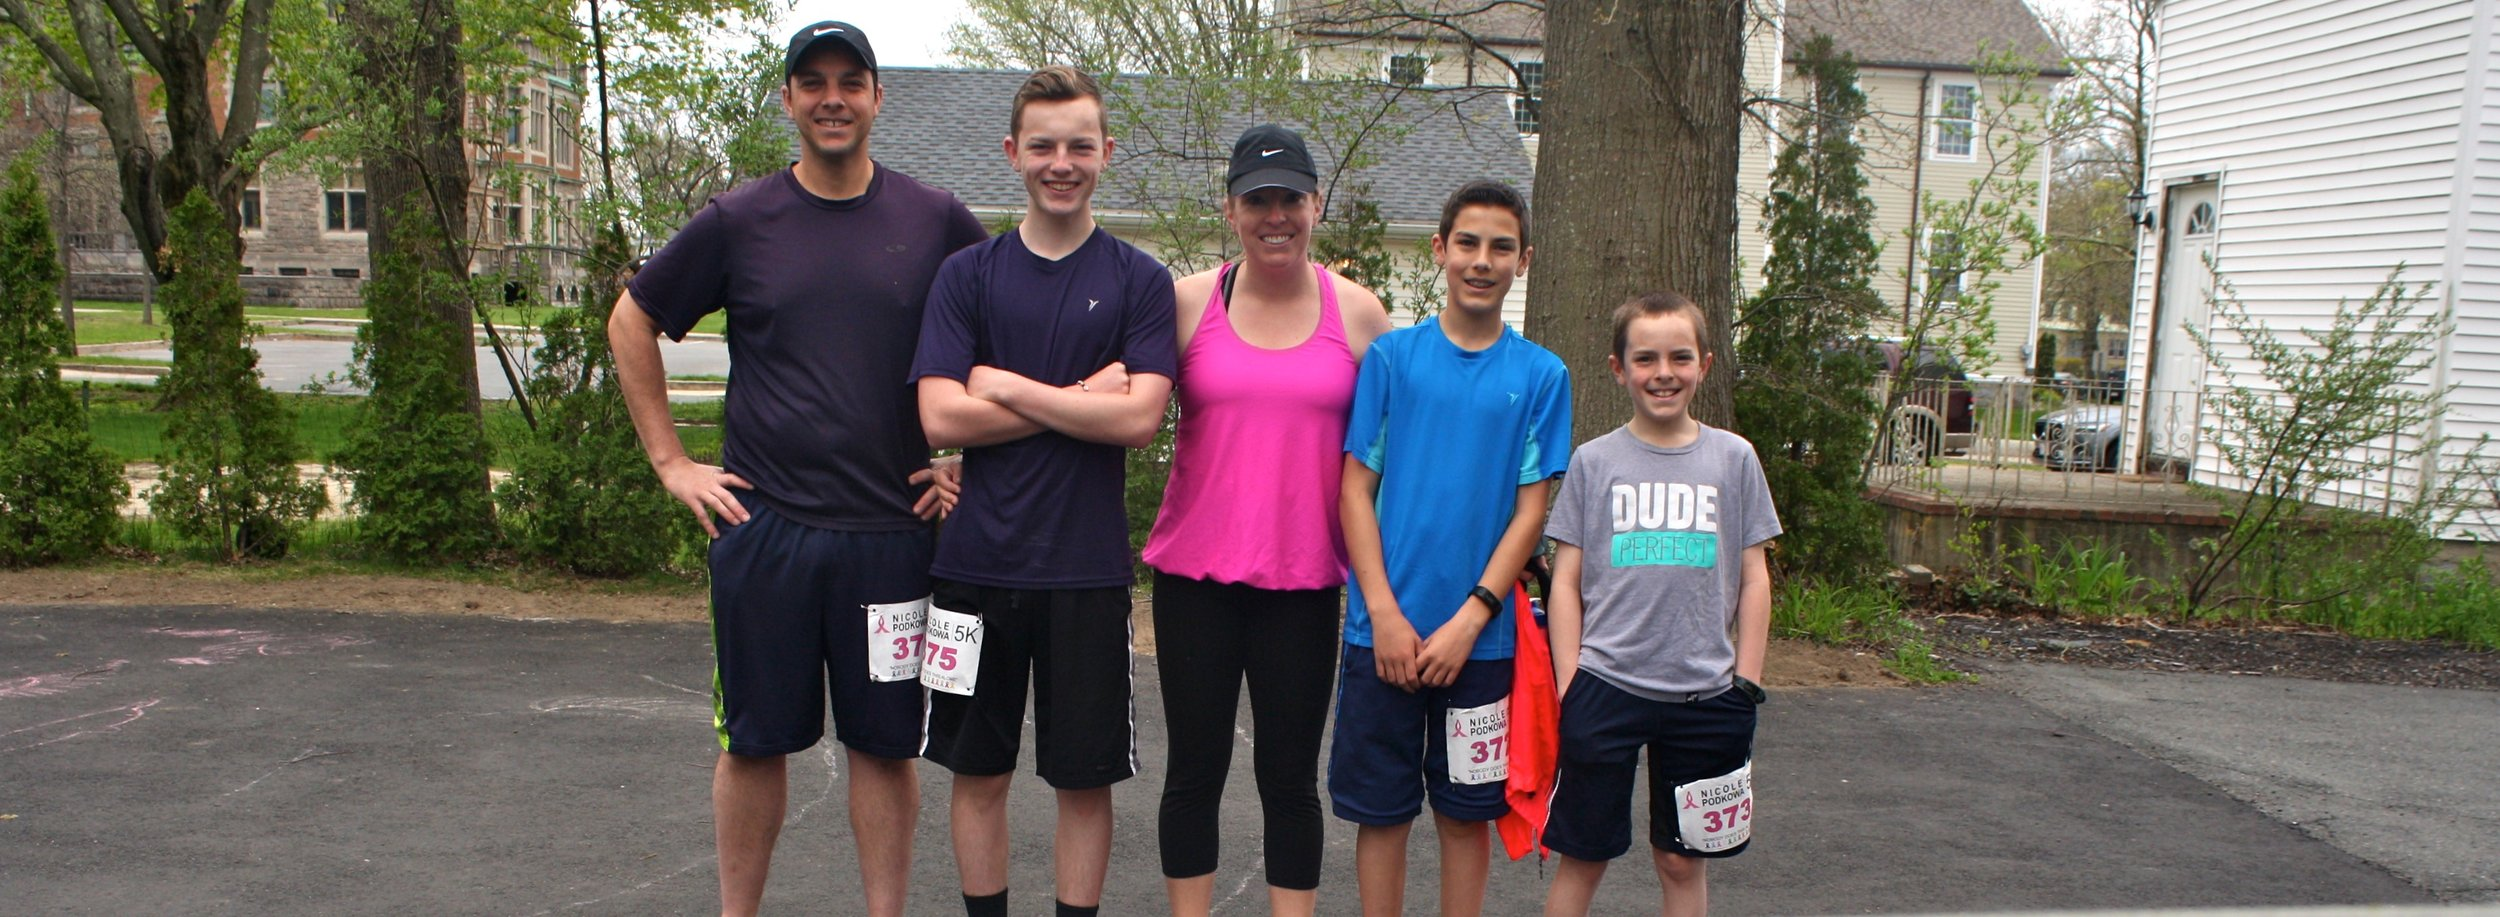 Our most recent family race with my husband and our three oldest runners.